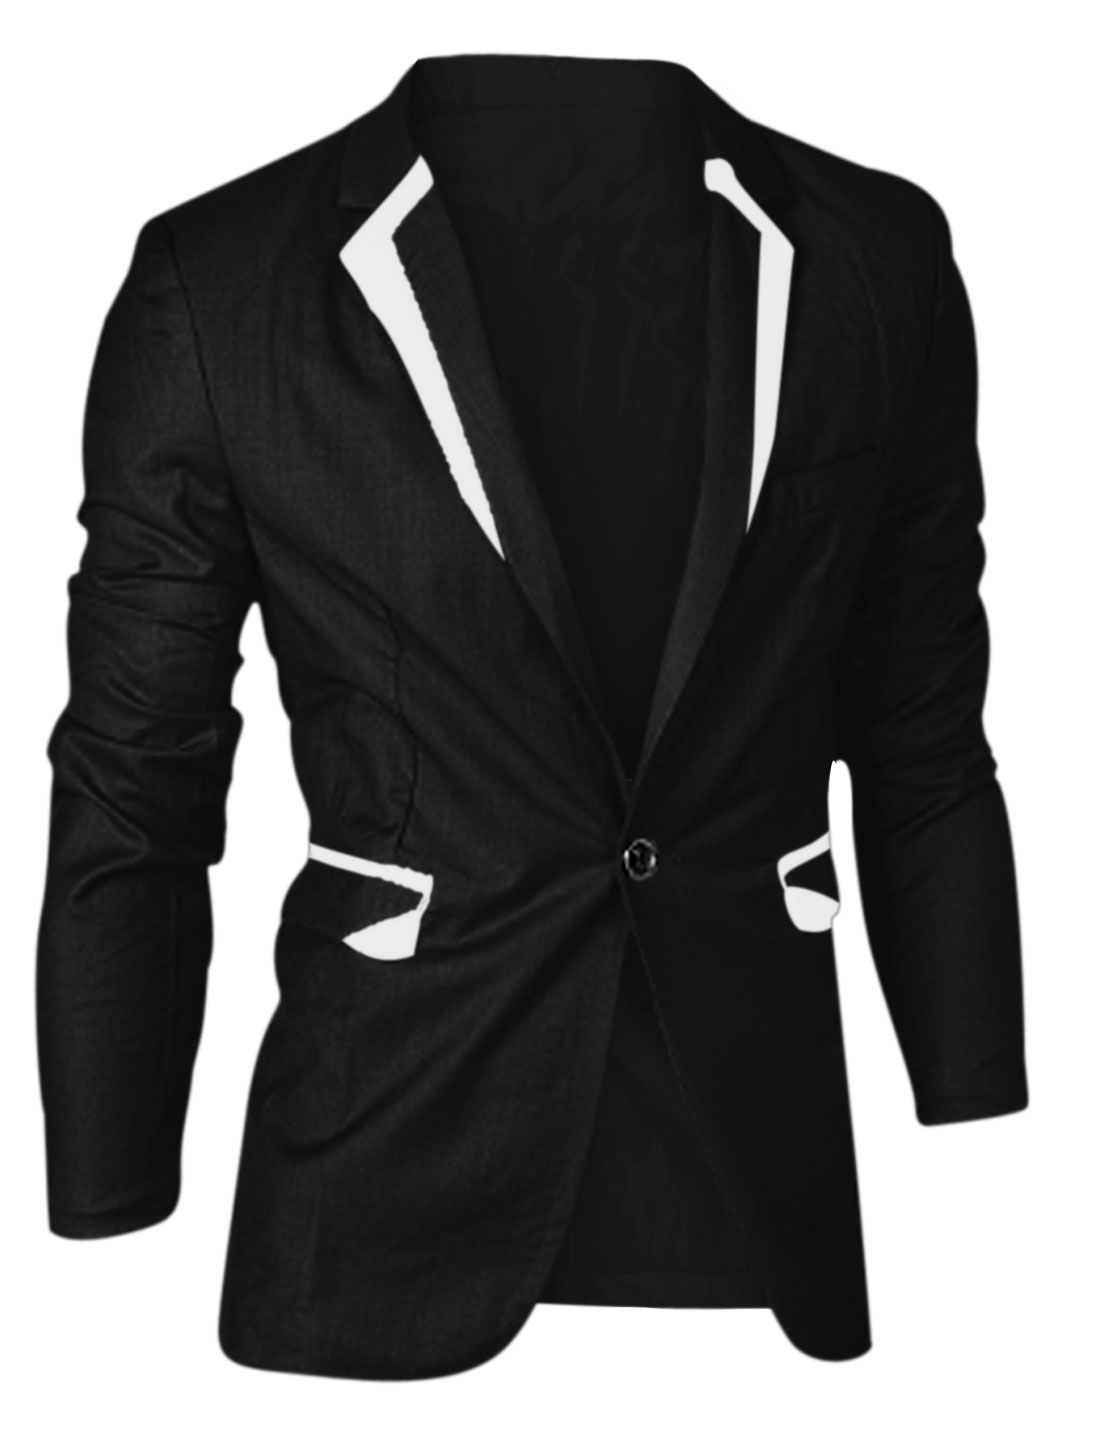 Men Notched Lapel One Button Closed Blazer Jacket Black M